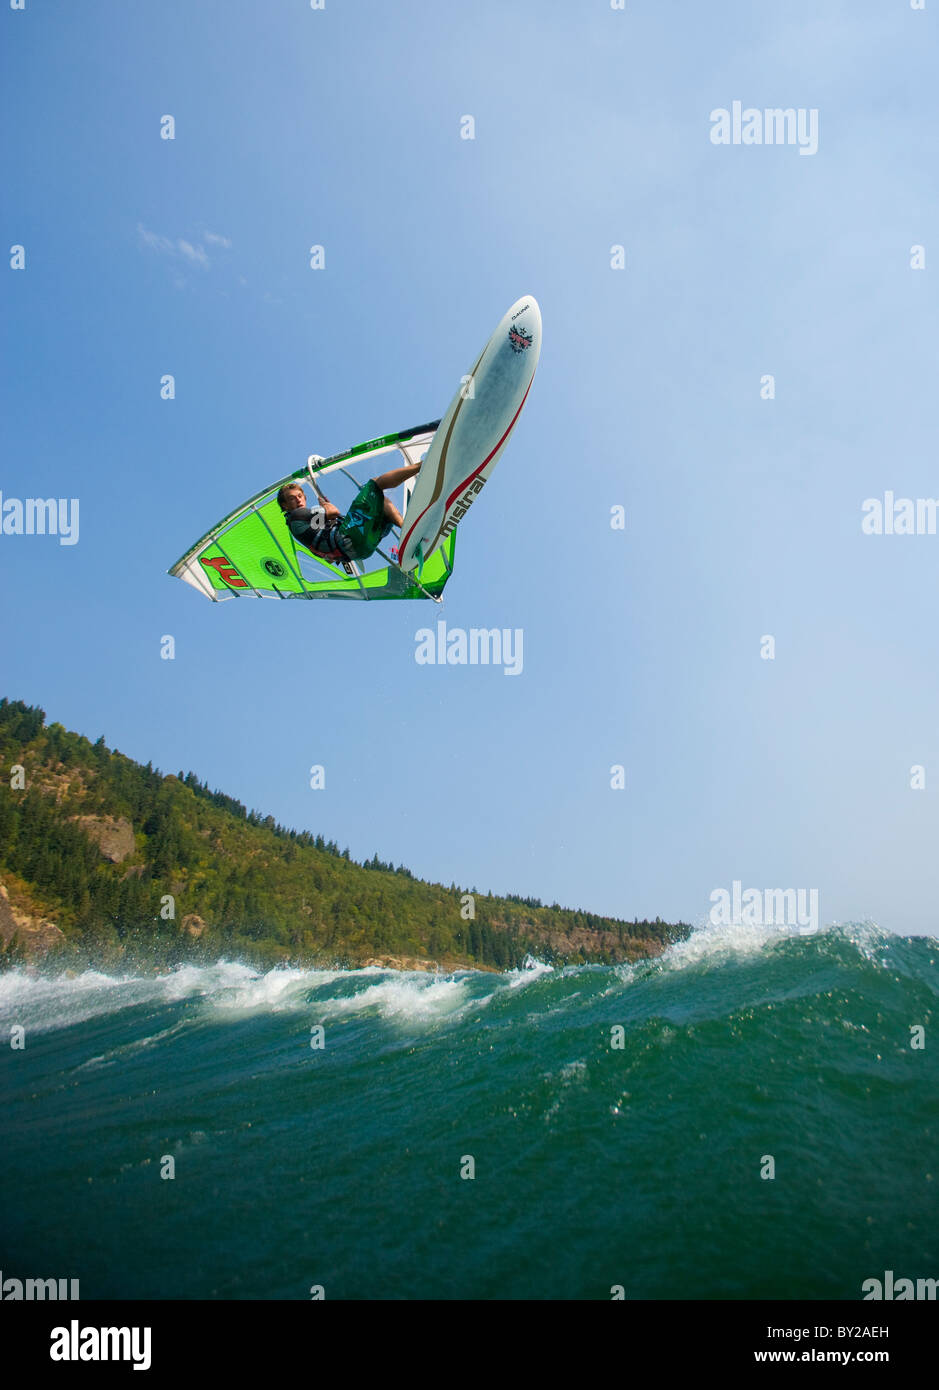 Windsurfer airs it out at the Spring Creek Fish Hatchery, WA. - Stock Image